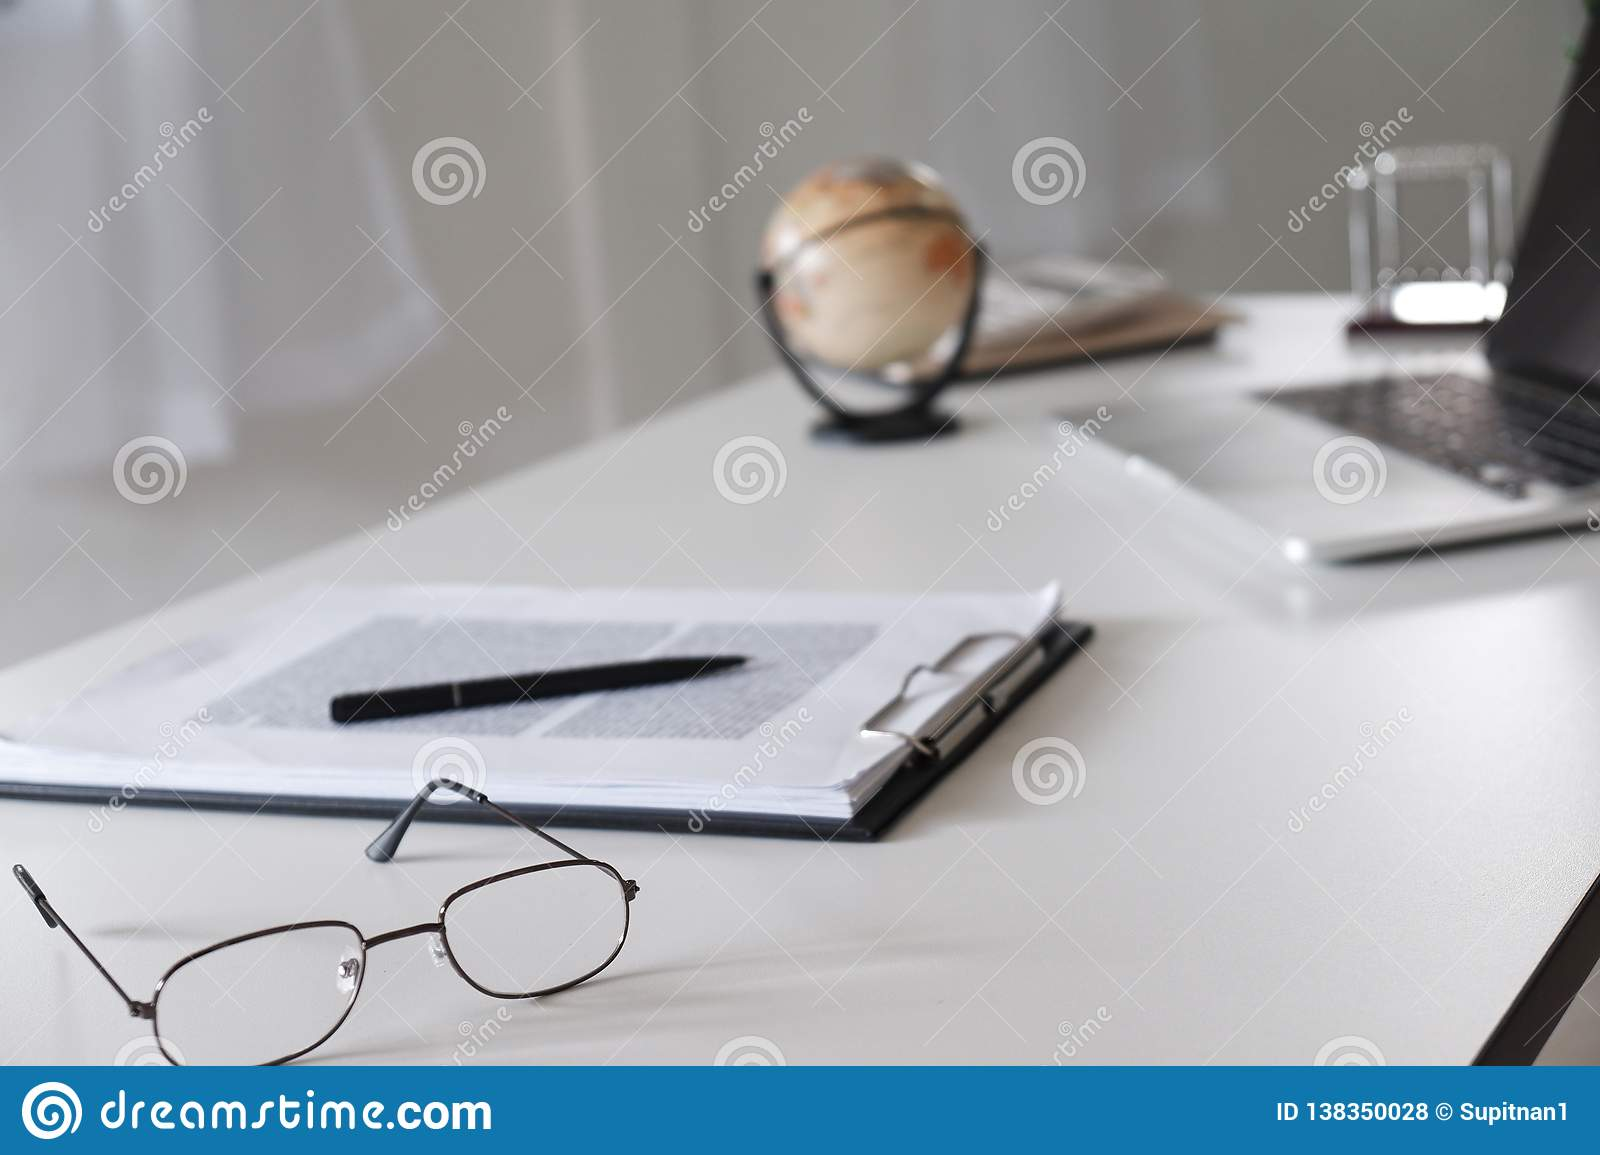 Office desk table with glasses, pen, pencil, laptop and world map